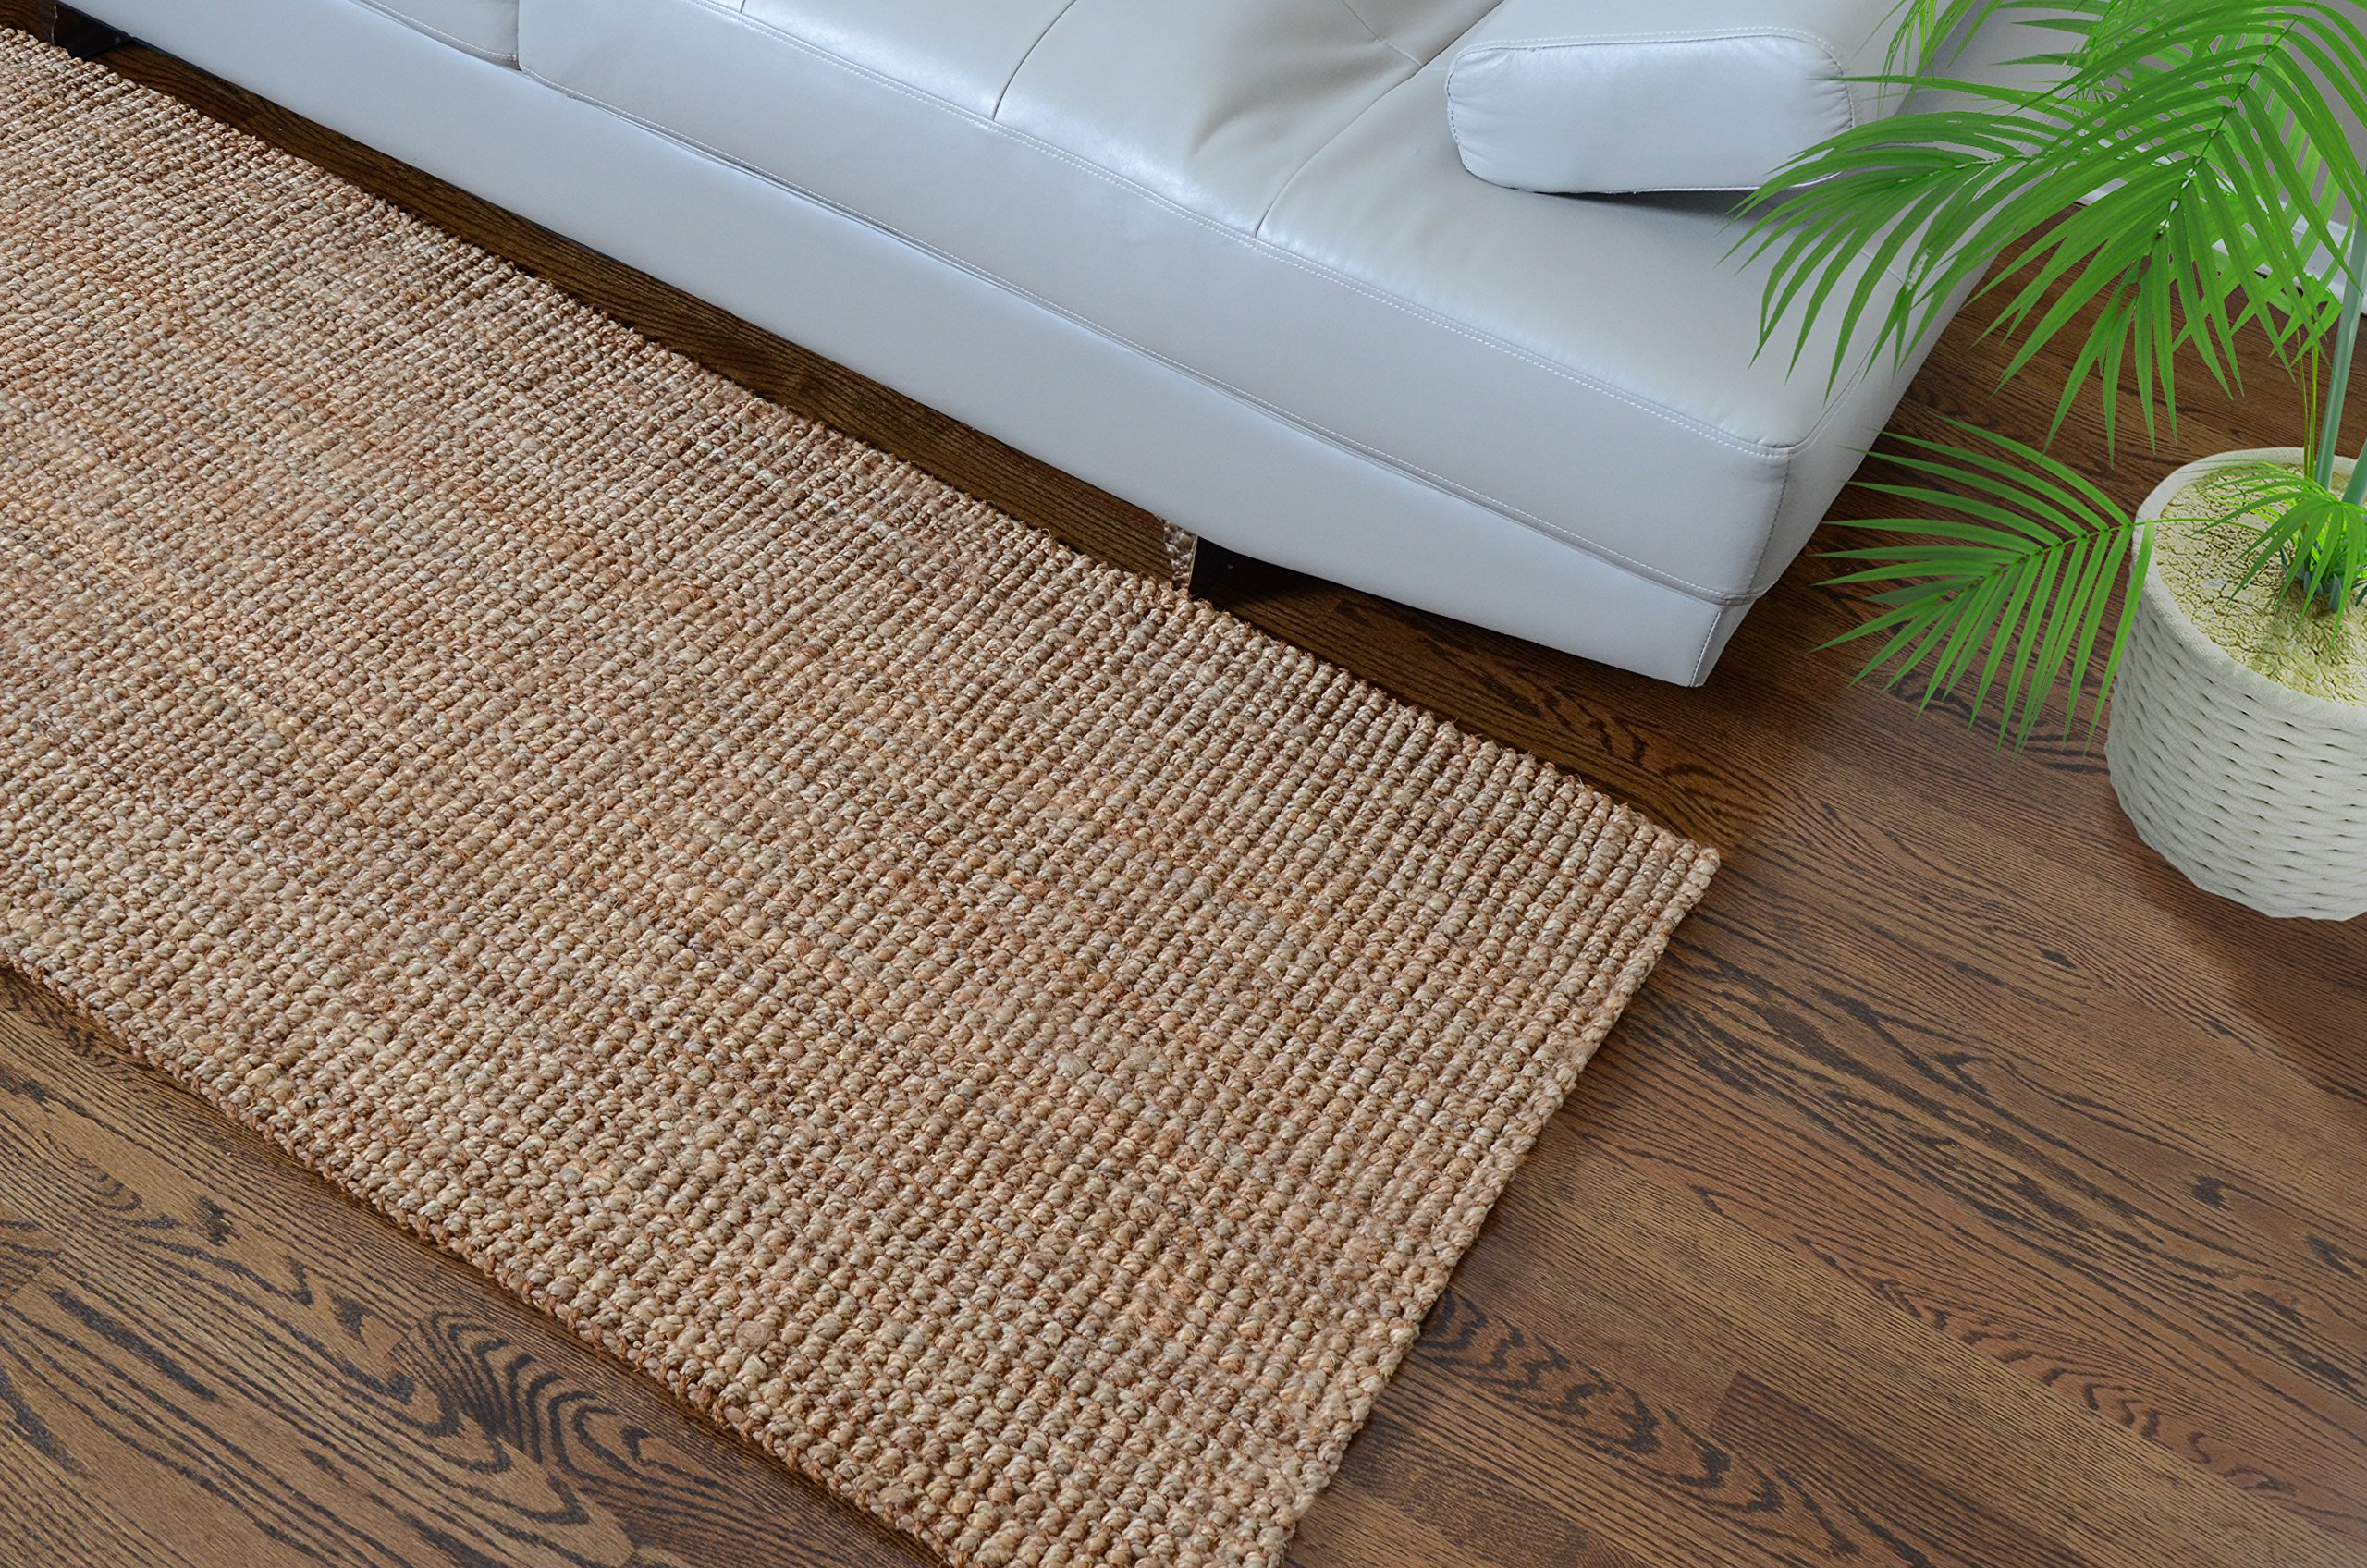 Milliard Handspun 4' x 6' Natural Area Jute Rug, Thick and Sturdy, Beautiful look and Matches all Color Schemes, Environmentally Friendly